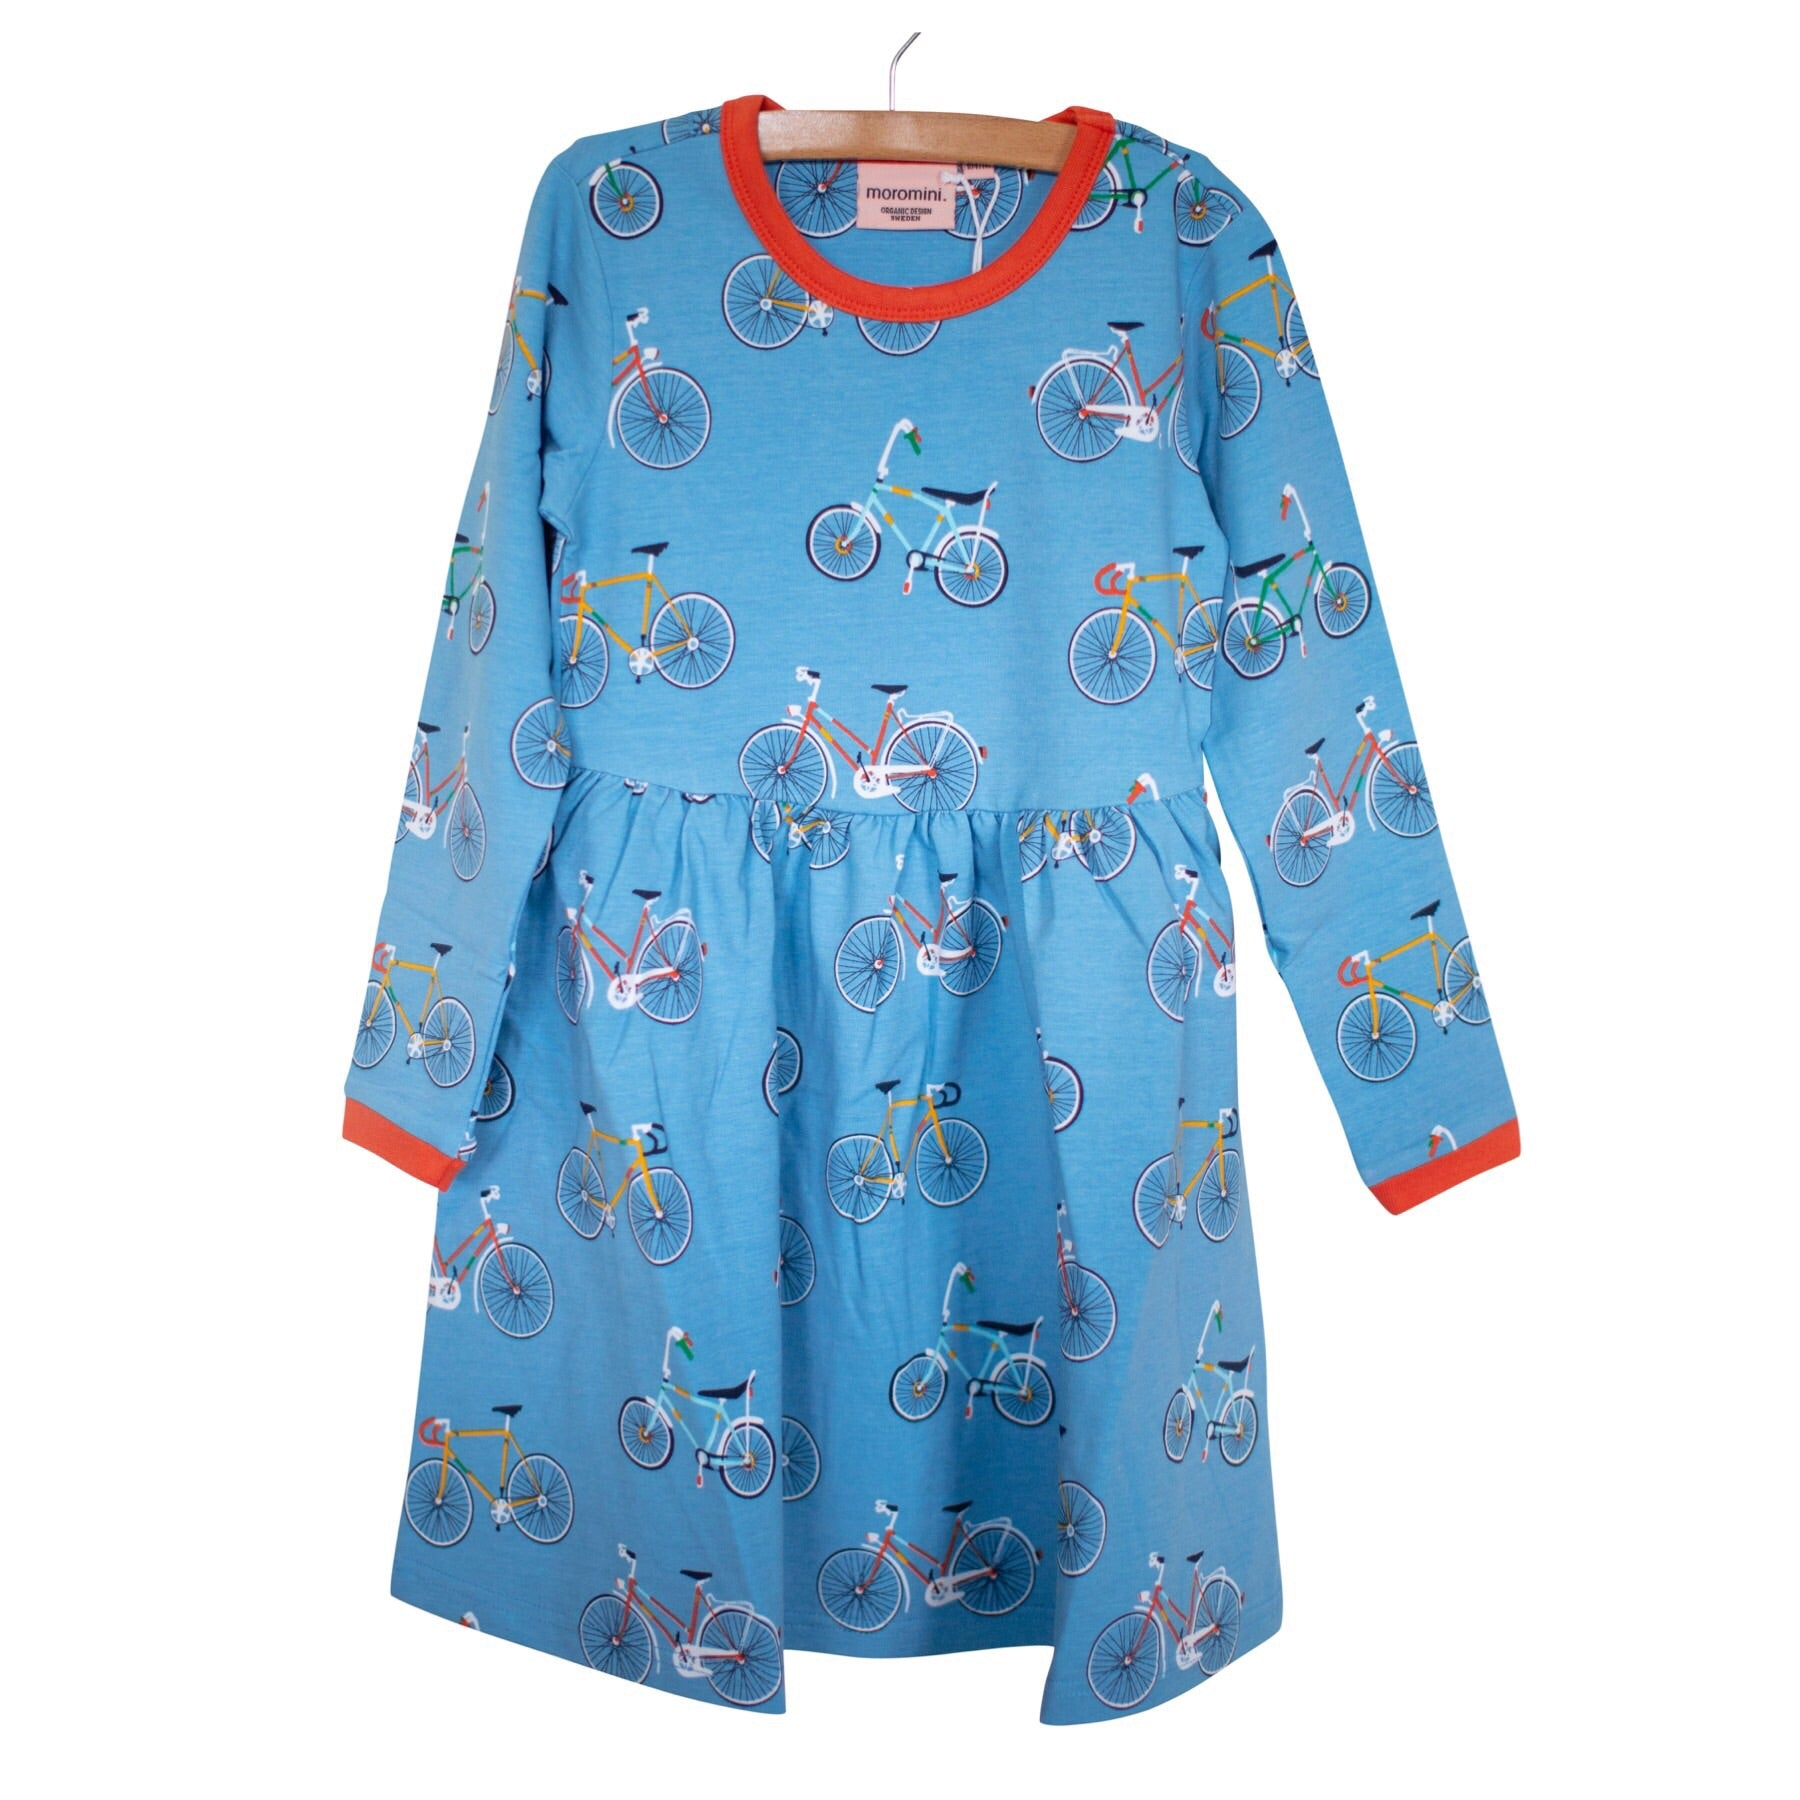 Moromini Twirly Dress LS Bike Like A Swede